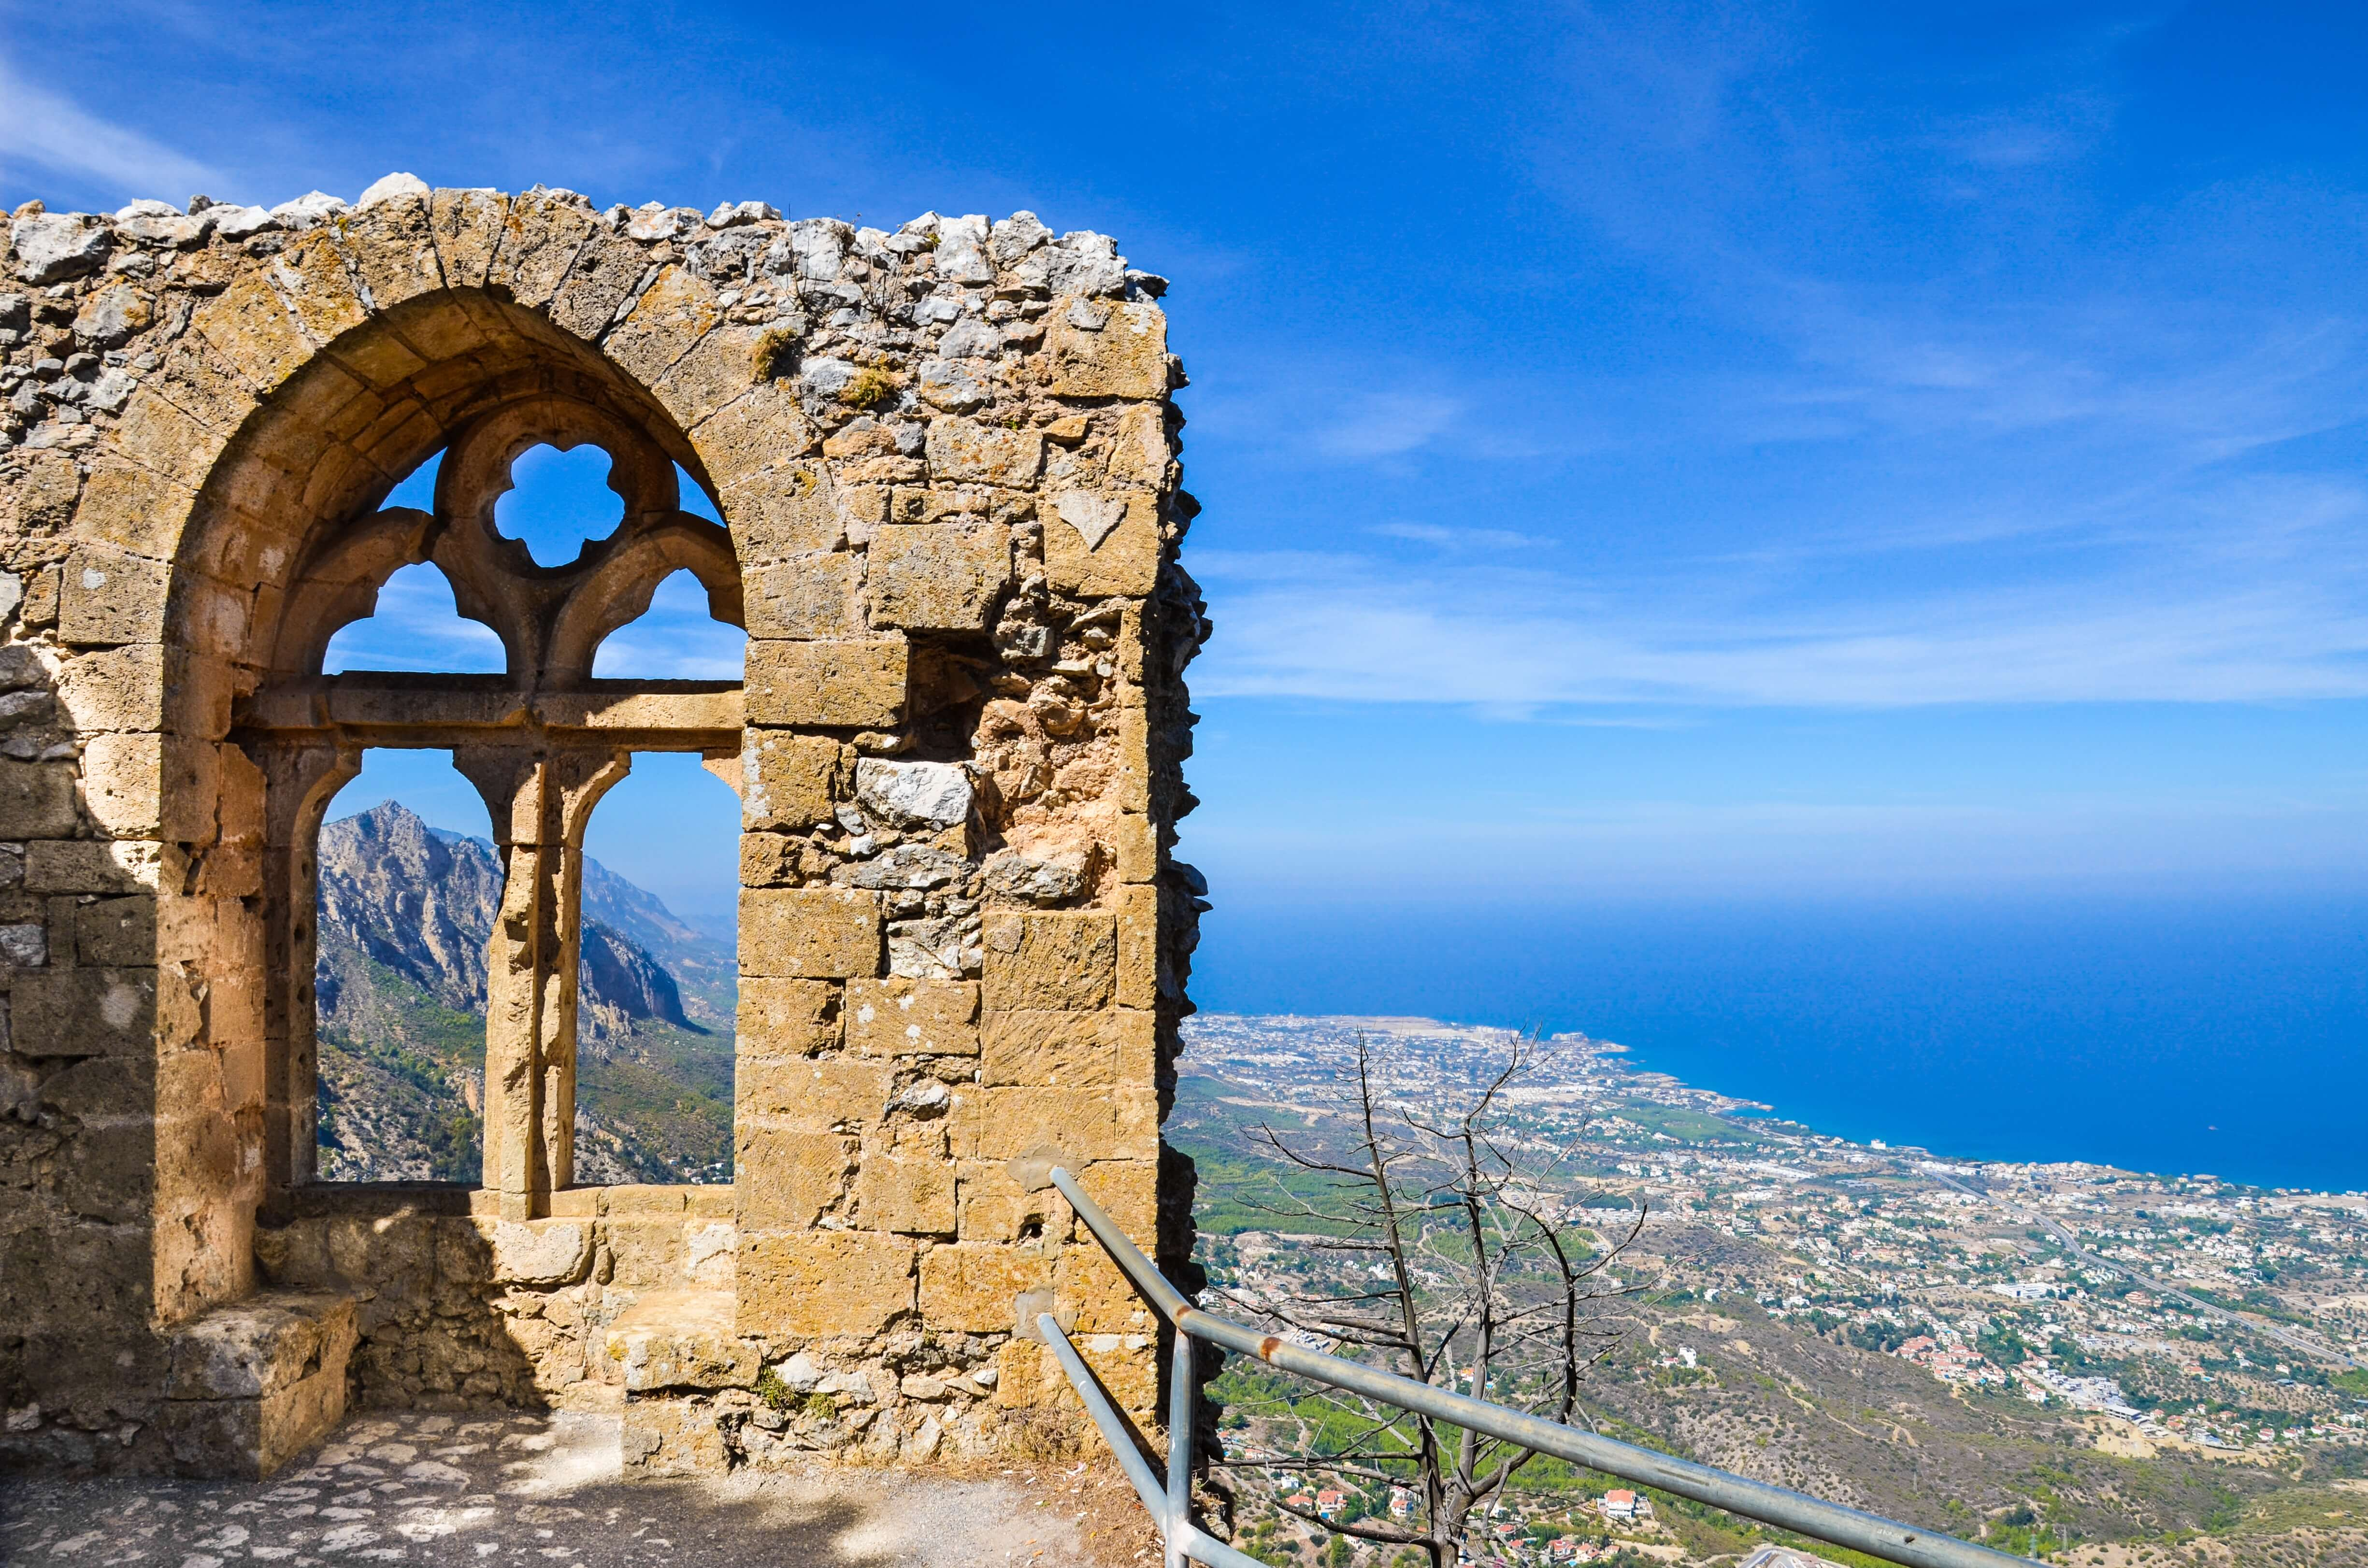 A view from the medieval ruins of the St. Hilarion Castle.